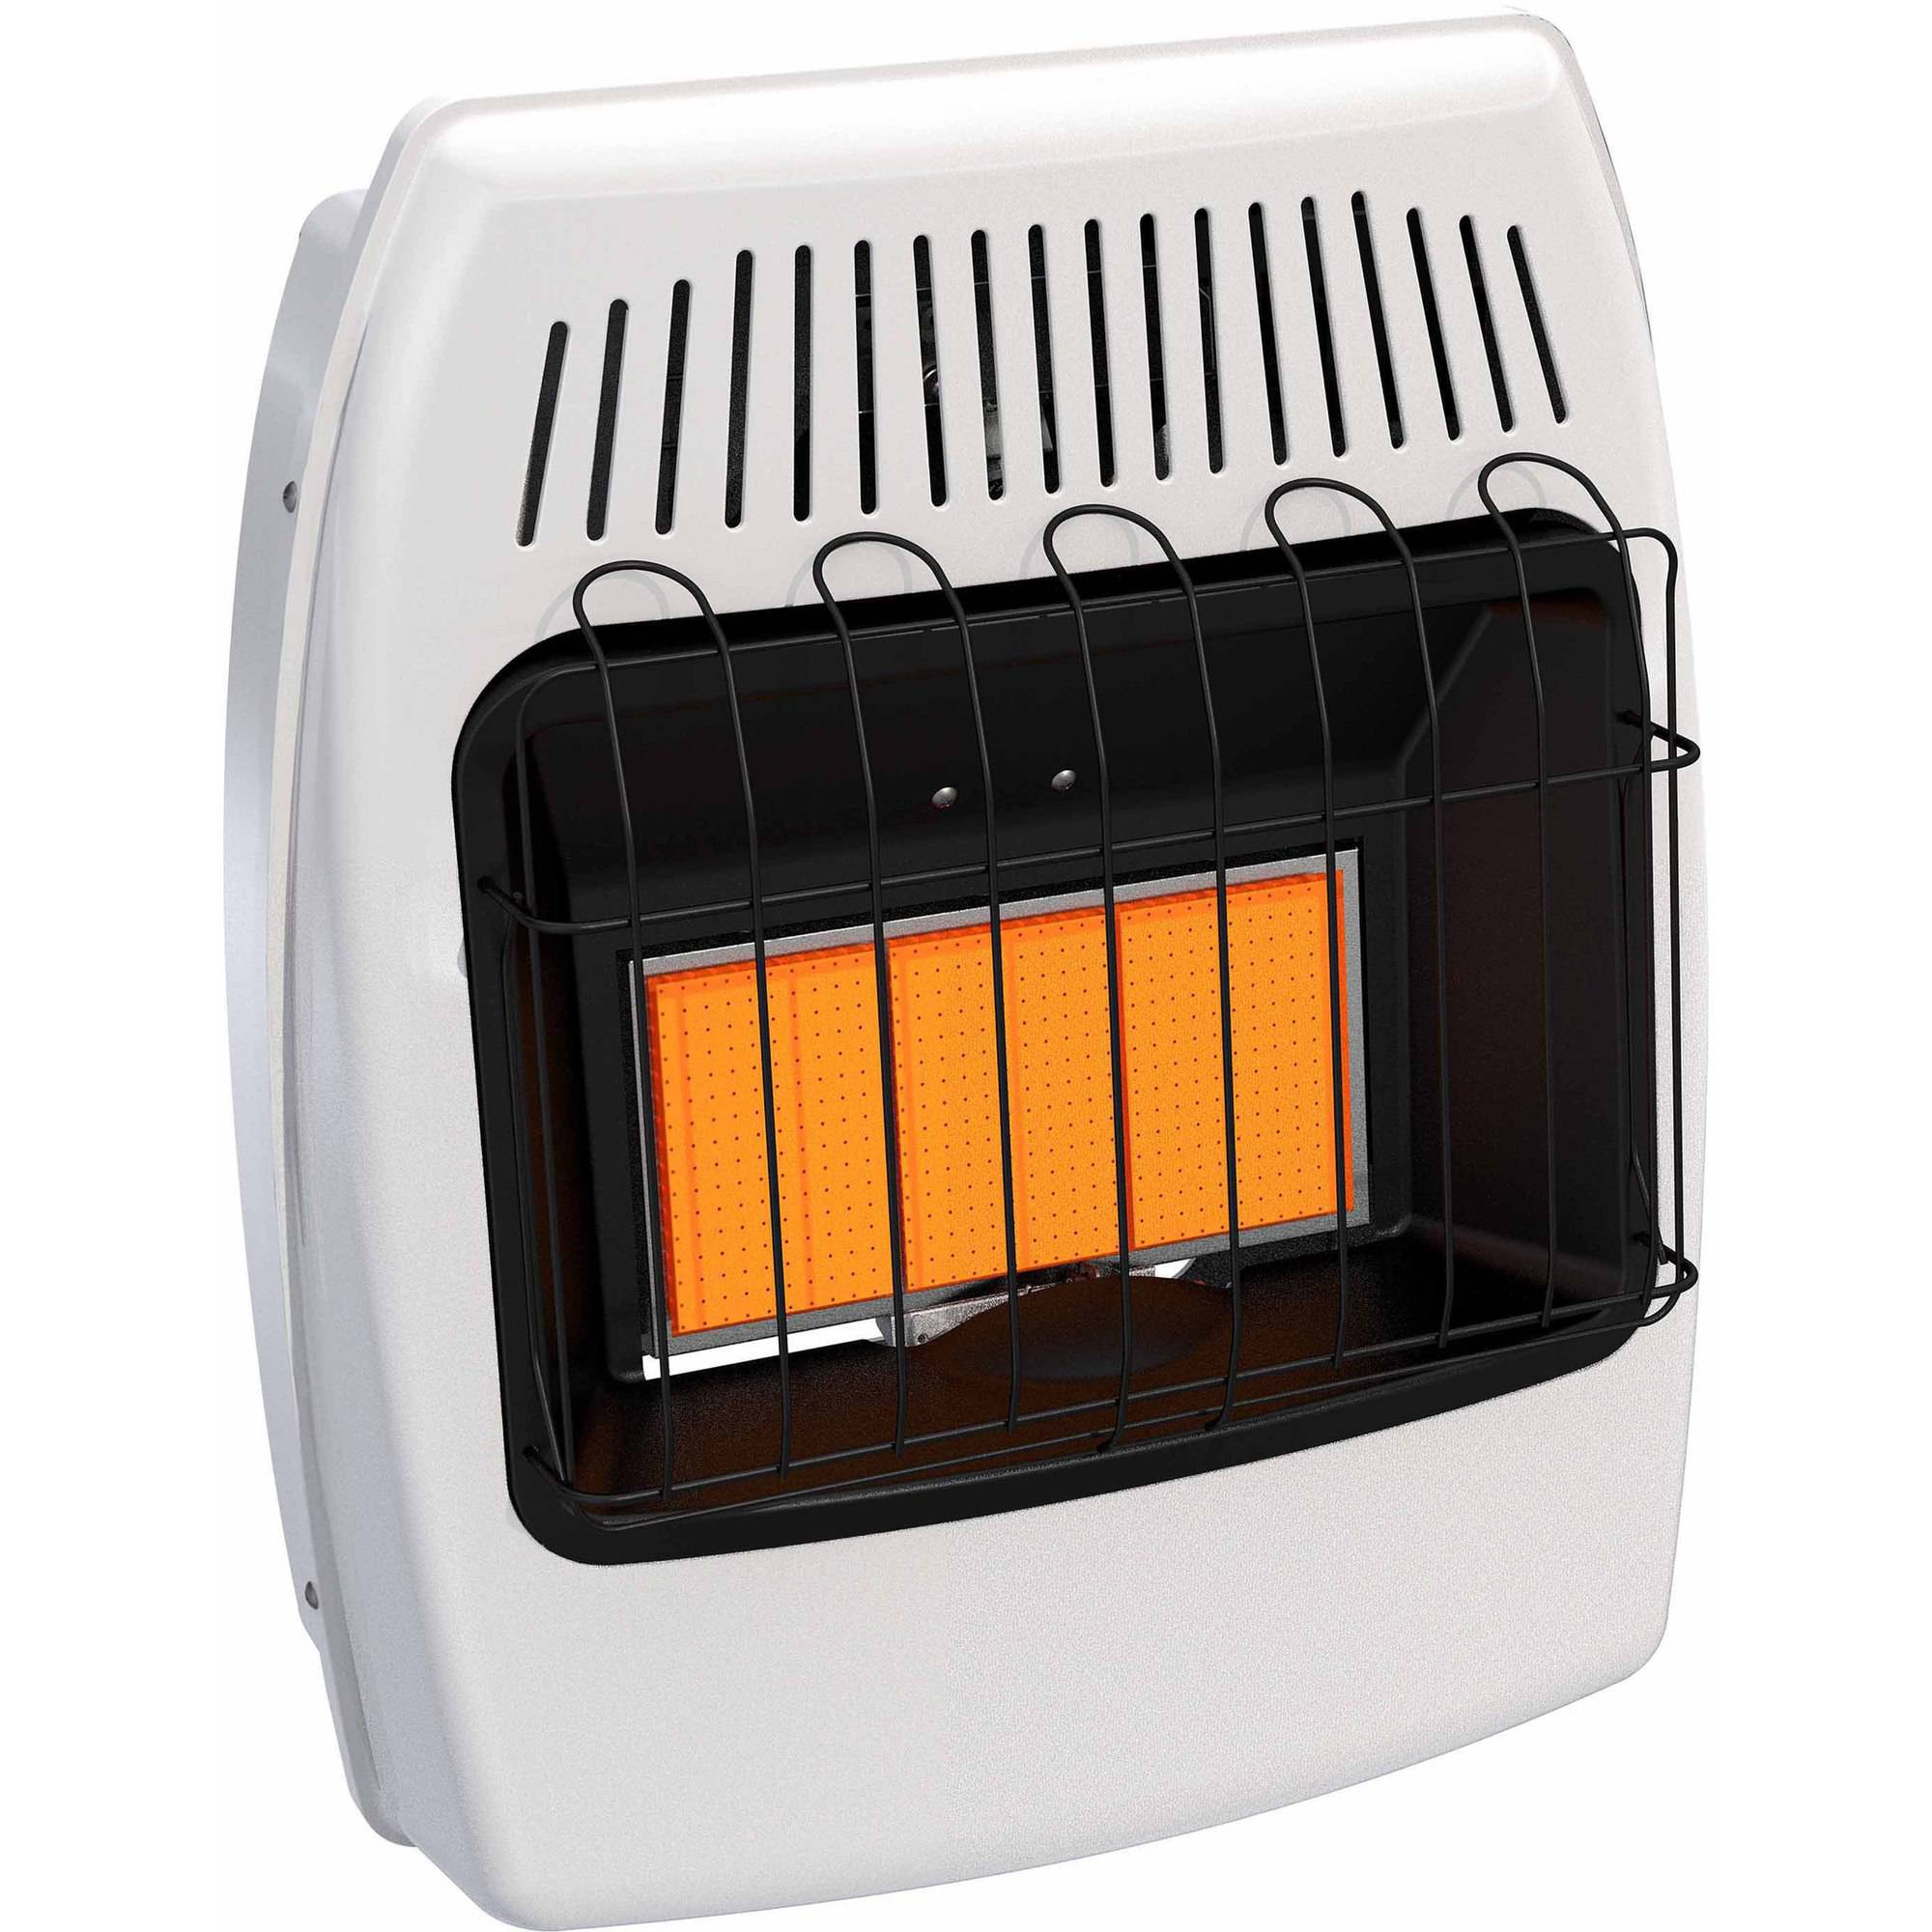 Dyna-Glo IR18NMDG-1 18,000 BTU Infrared Natural Gas Vent Free Wall Heater